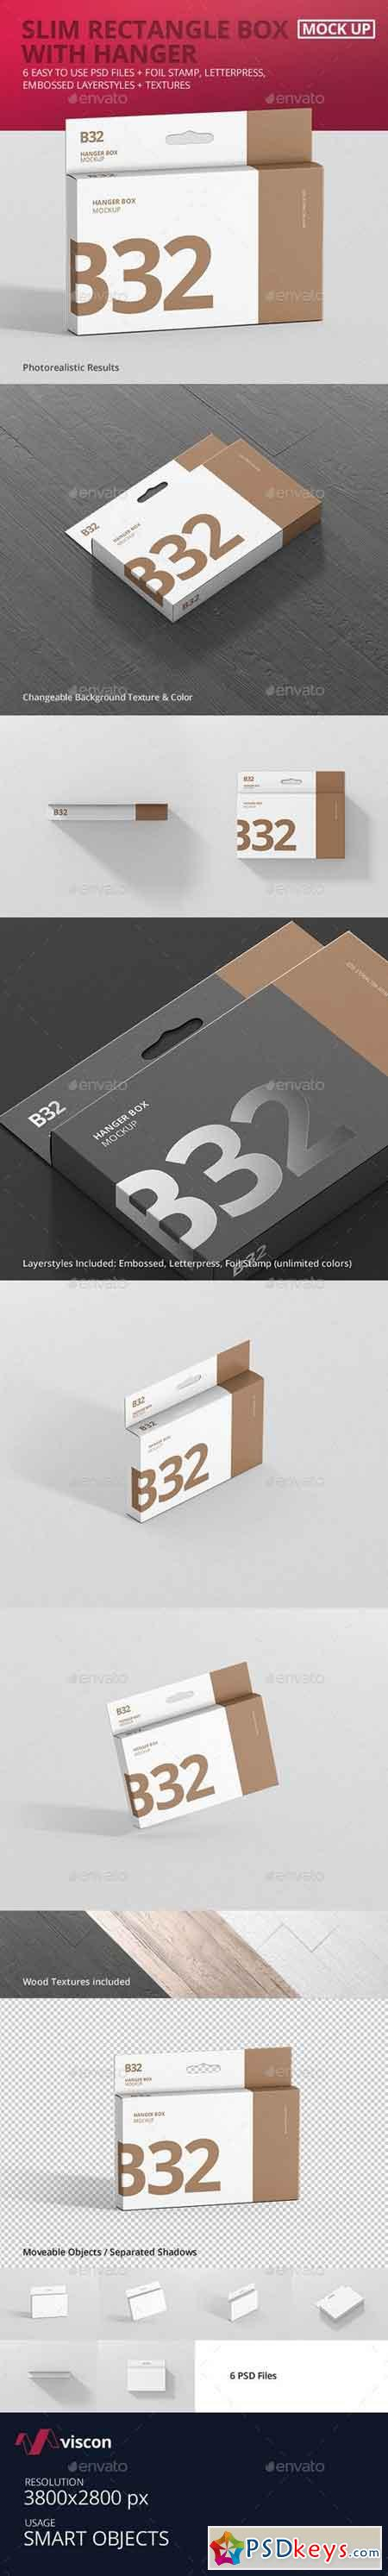 Box Mockup - Wide Slim Rectangle Size with Hanger 21258176